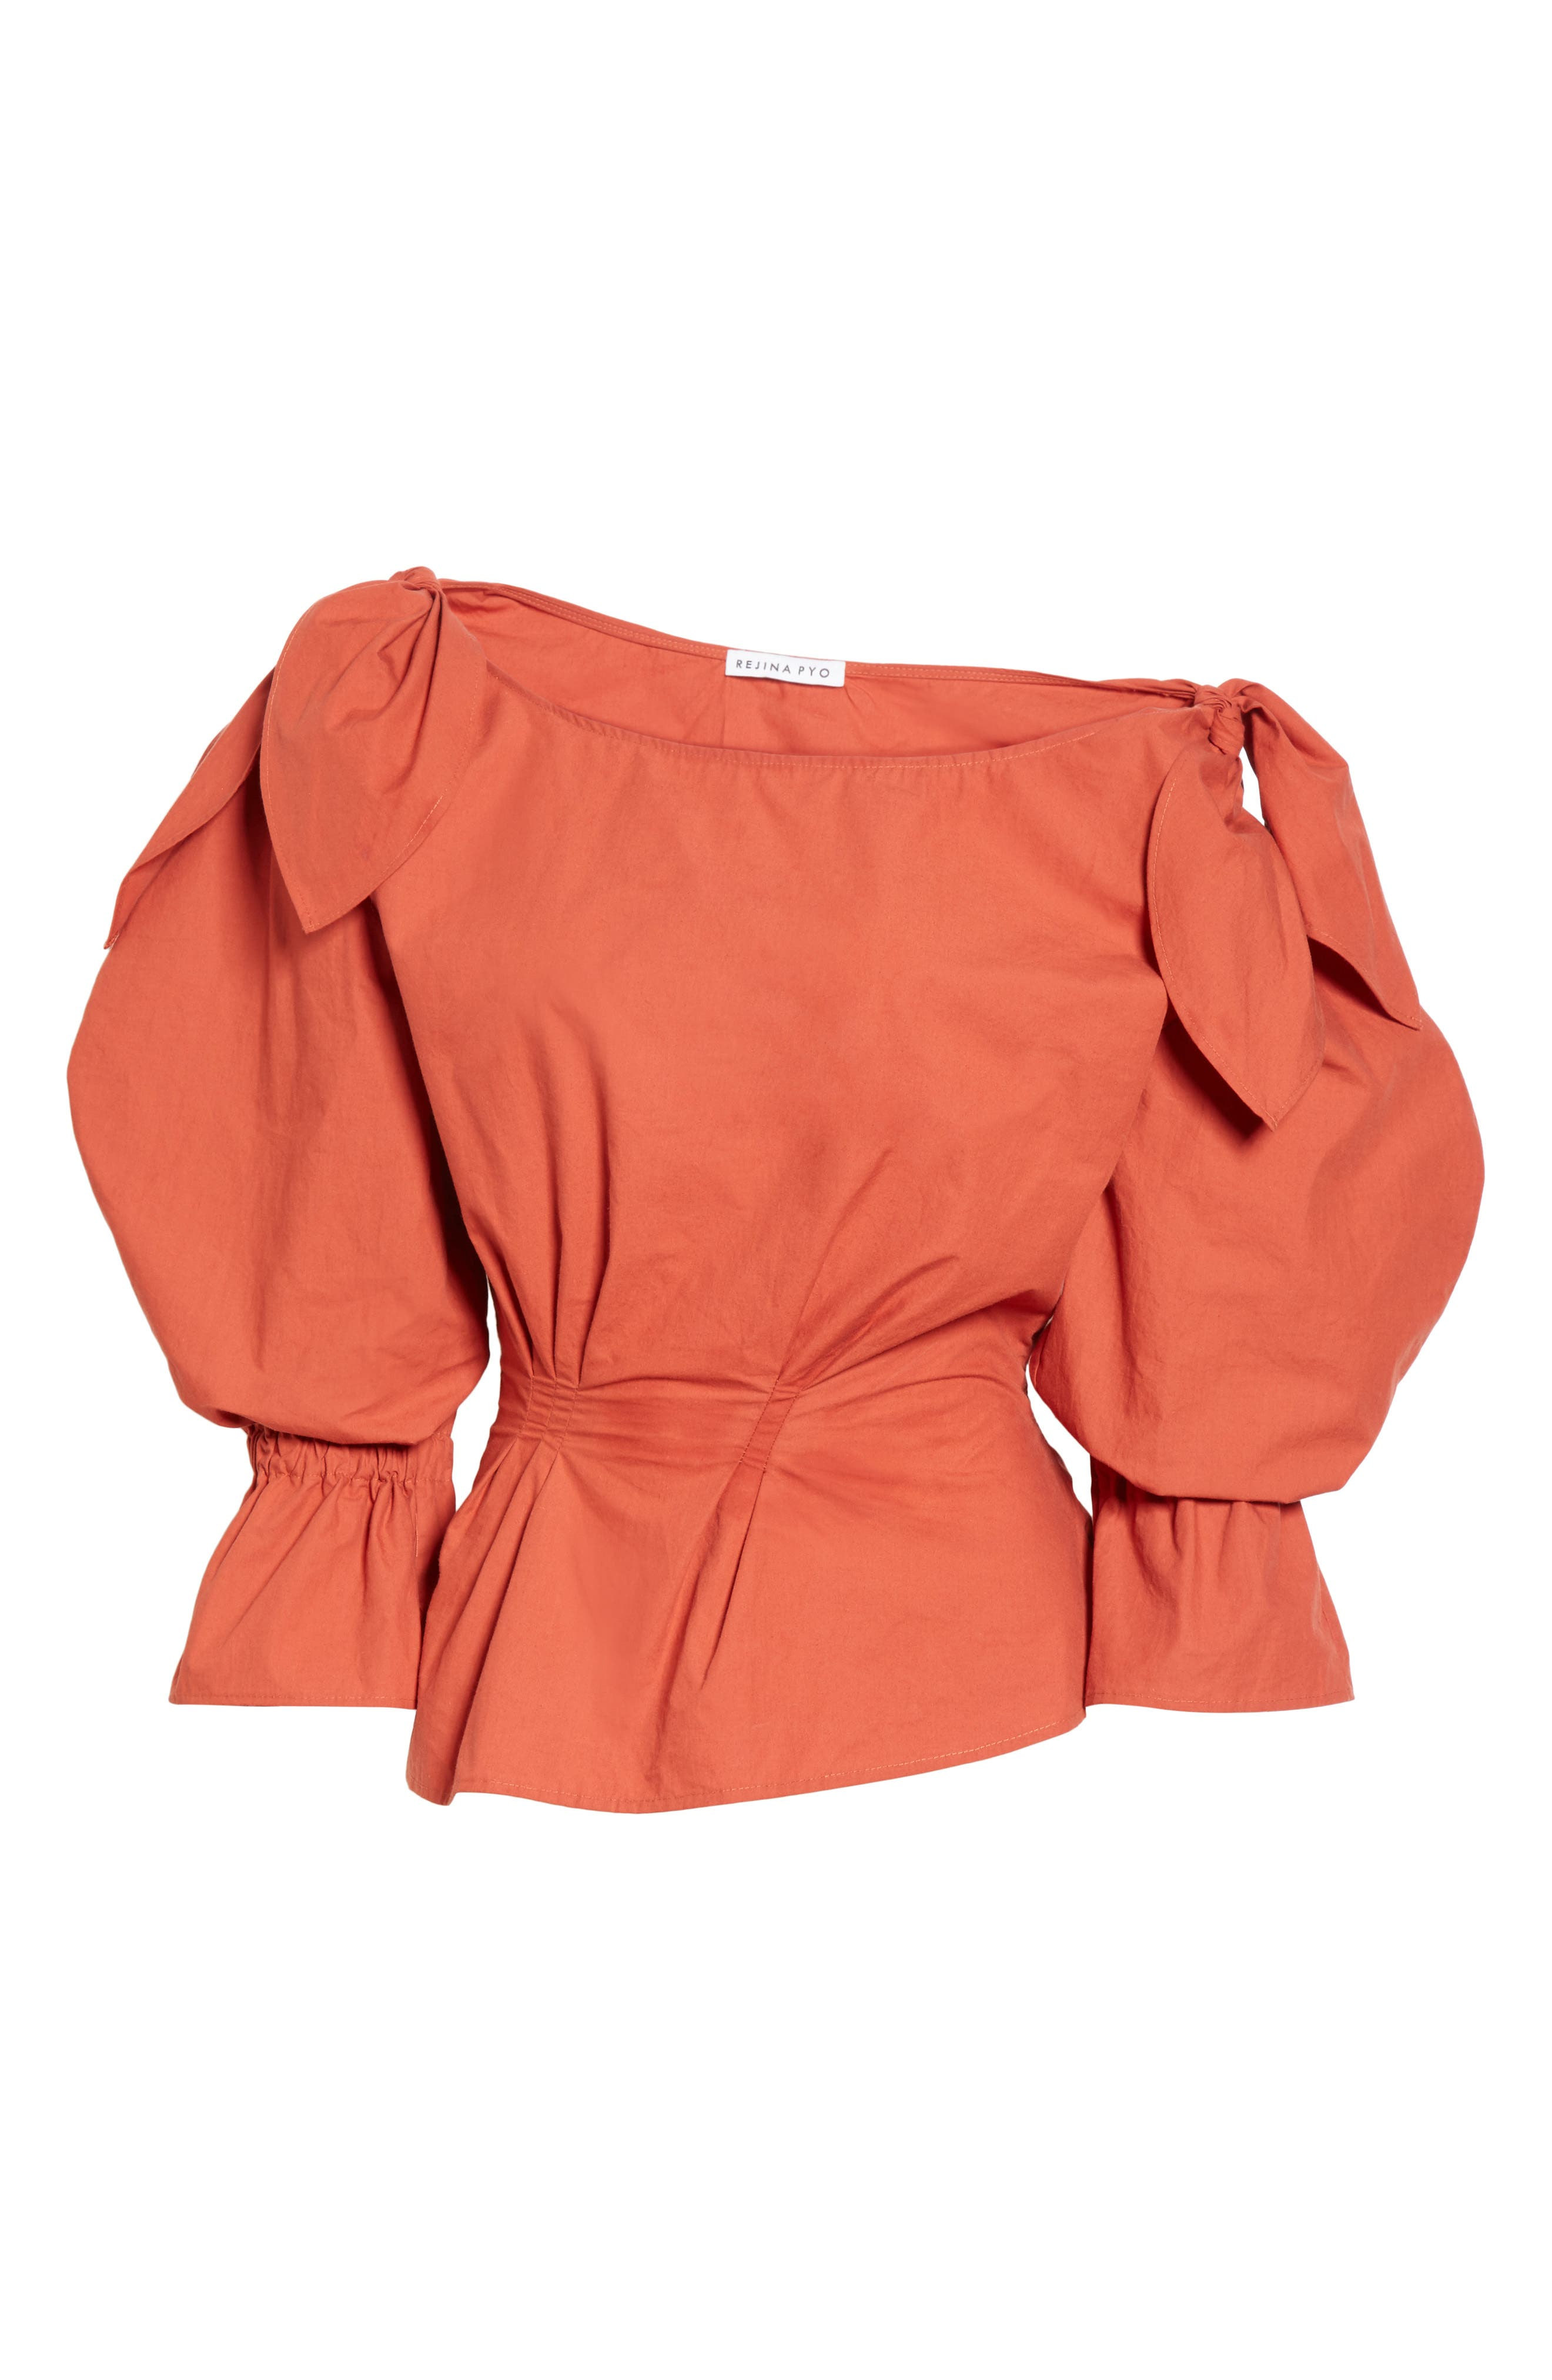 Michelle One-Shoulder Puff Sleeve Blouse,                             Alternate thumbnail 7, color,                             Rust